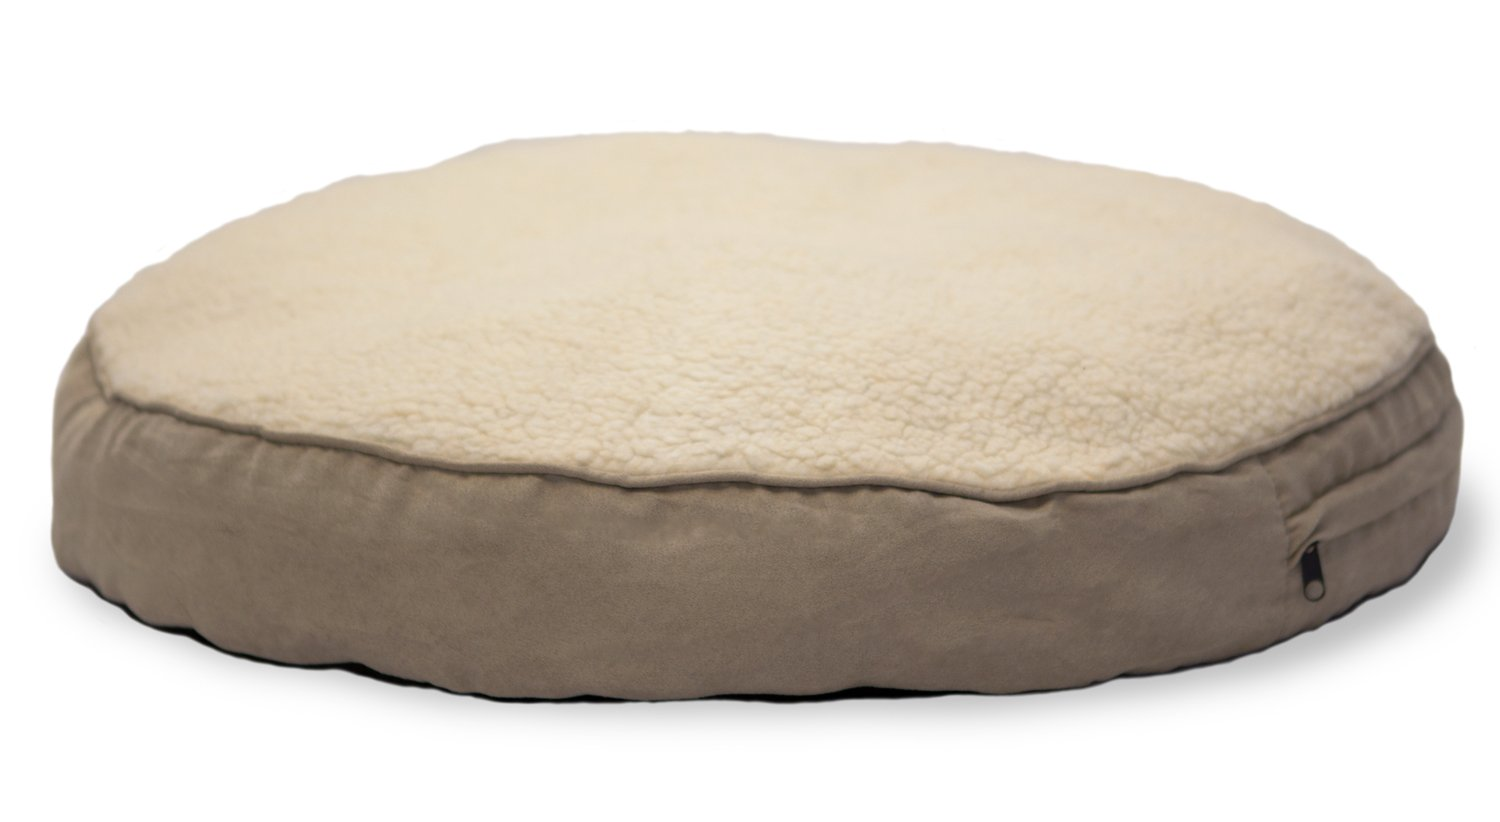 Furhaven Pet Dog Bed | Faux Sheepskin & Suede Round Pillow Pet Bed for Dogs & Cats, Clay, 26-Inch